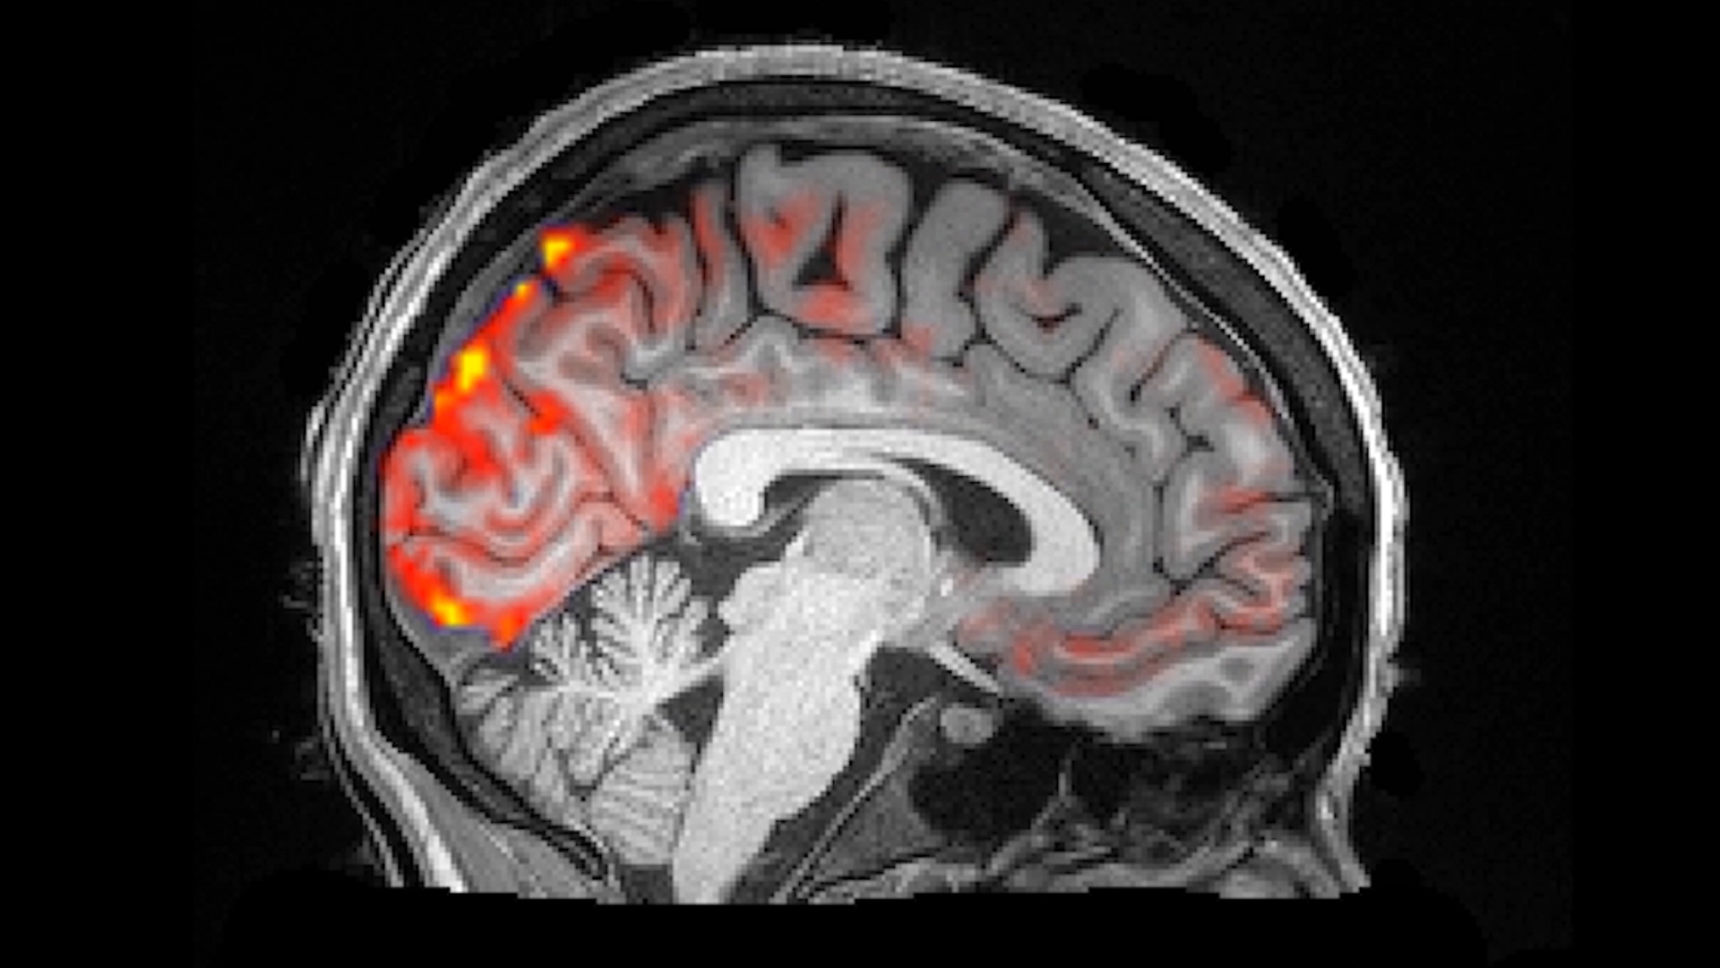 While human subjects slept, scientists used an MRI technique to observe a cyclic pattern of fluid movement in their brains. In this video, red indicates where oxygenated blood flow is abundant, while blue represents influxes of cerebrospinal fluid. The results suggest that as blood moves out of the brain in response to lower neural activity, cerebrospinal fluid rushes in to fill the available space.